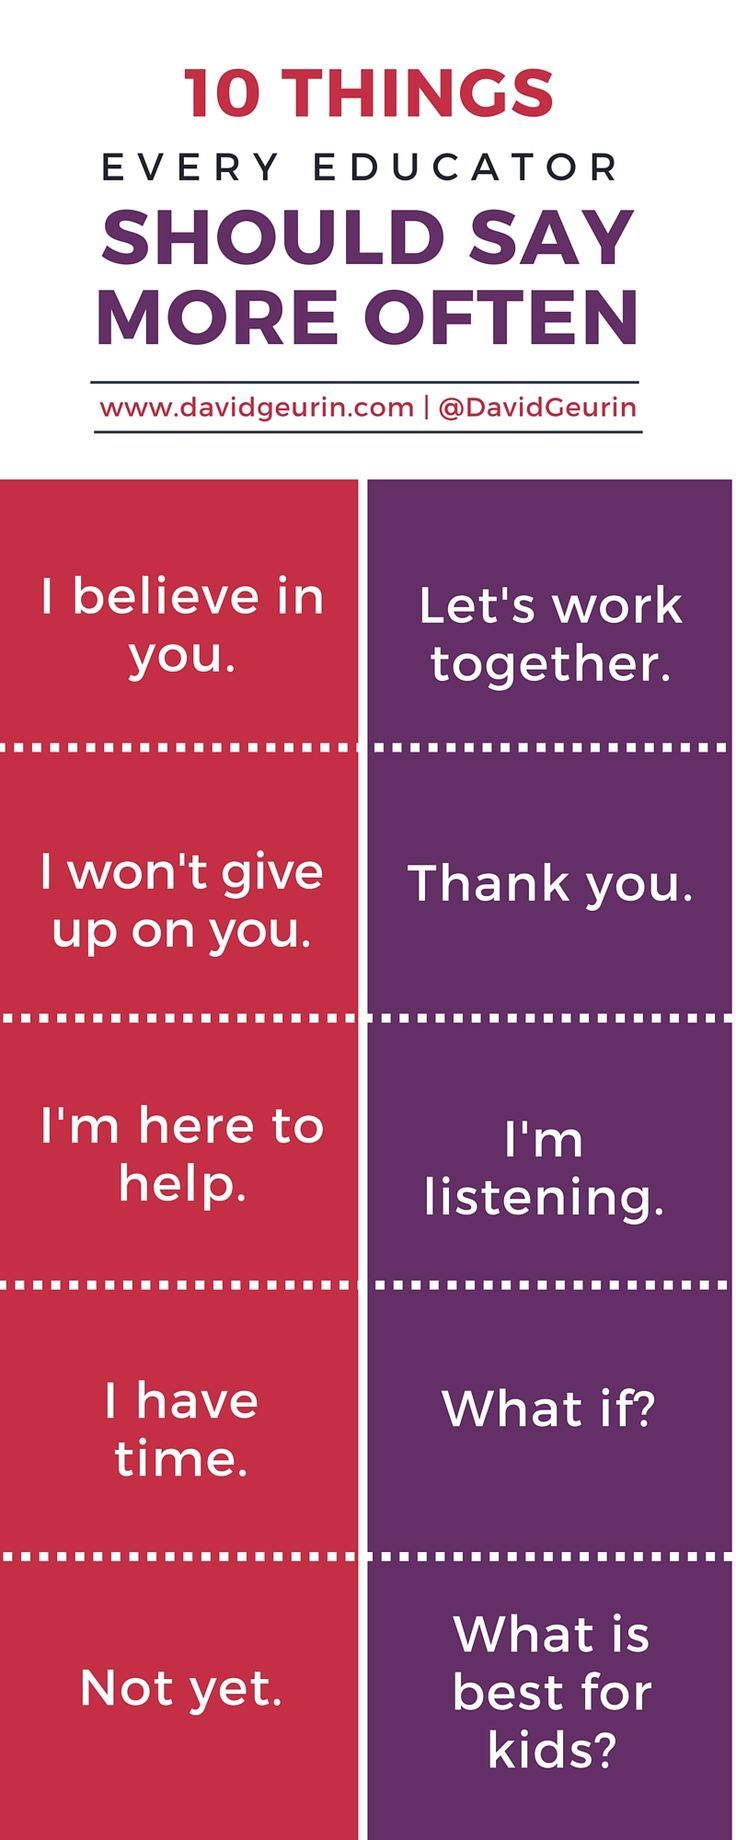 10 Things Every Educator Should Say More Often www.davidgeurin.com